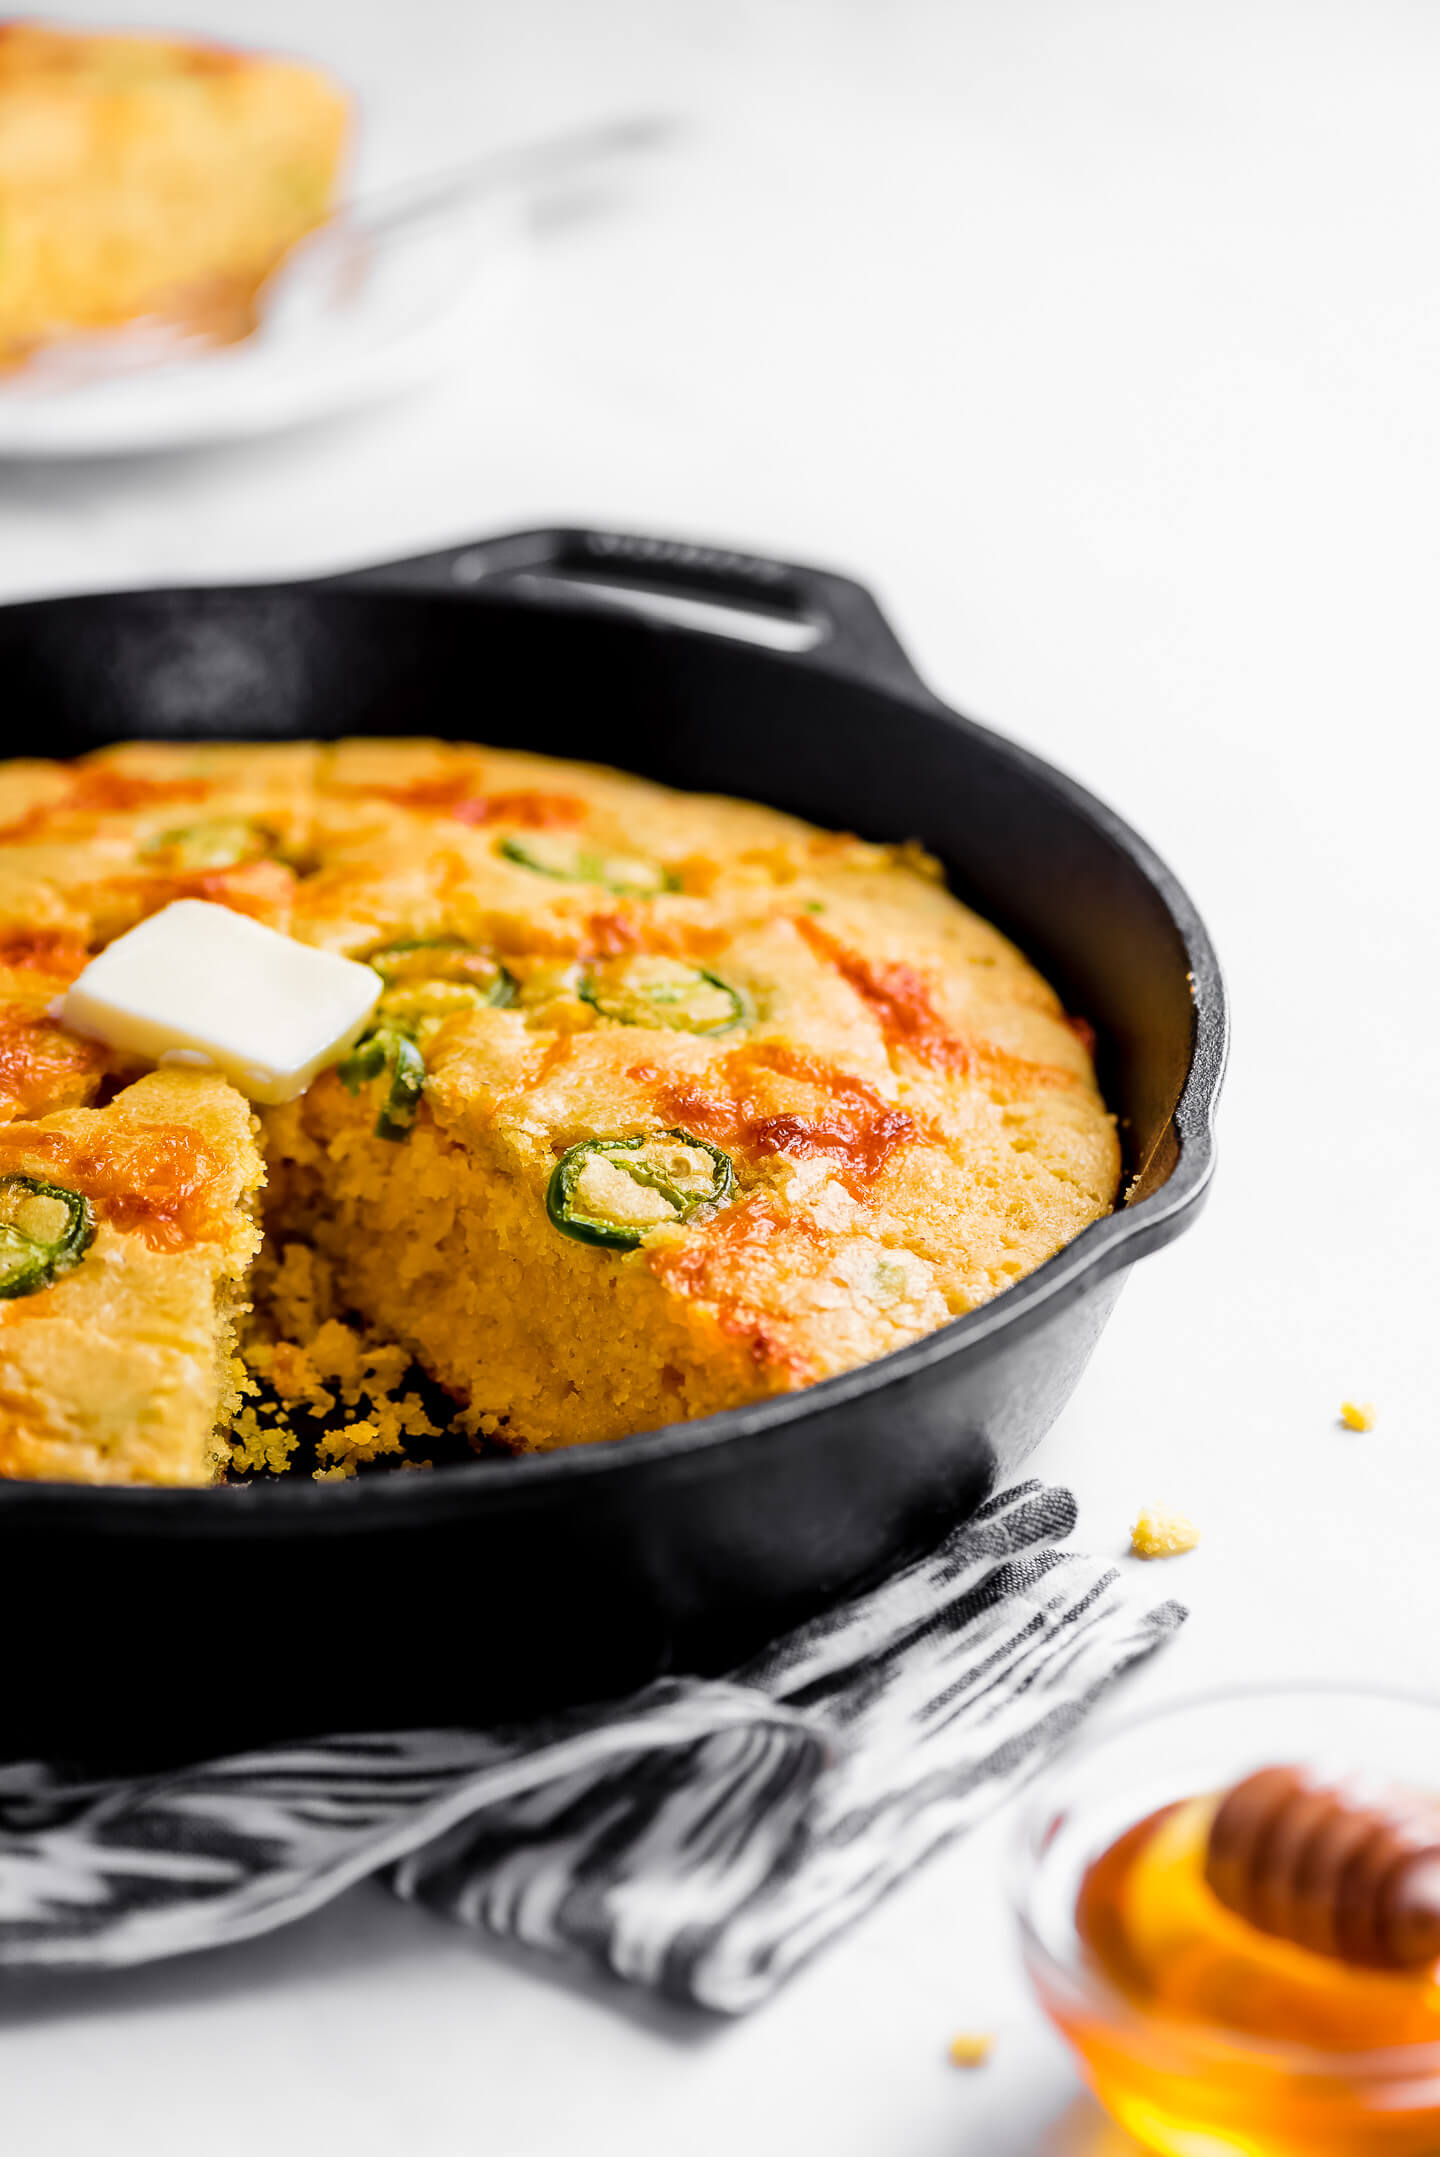 Jalapeno Cornbread in a cast iron skillet with a pat of butter on top and a dish of honey on the side.